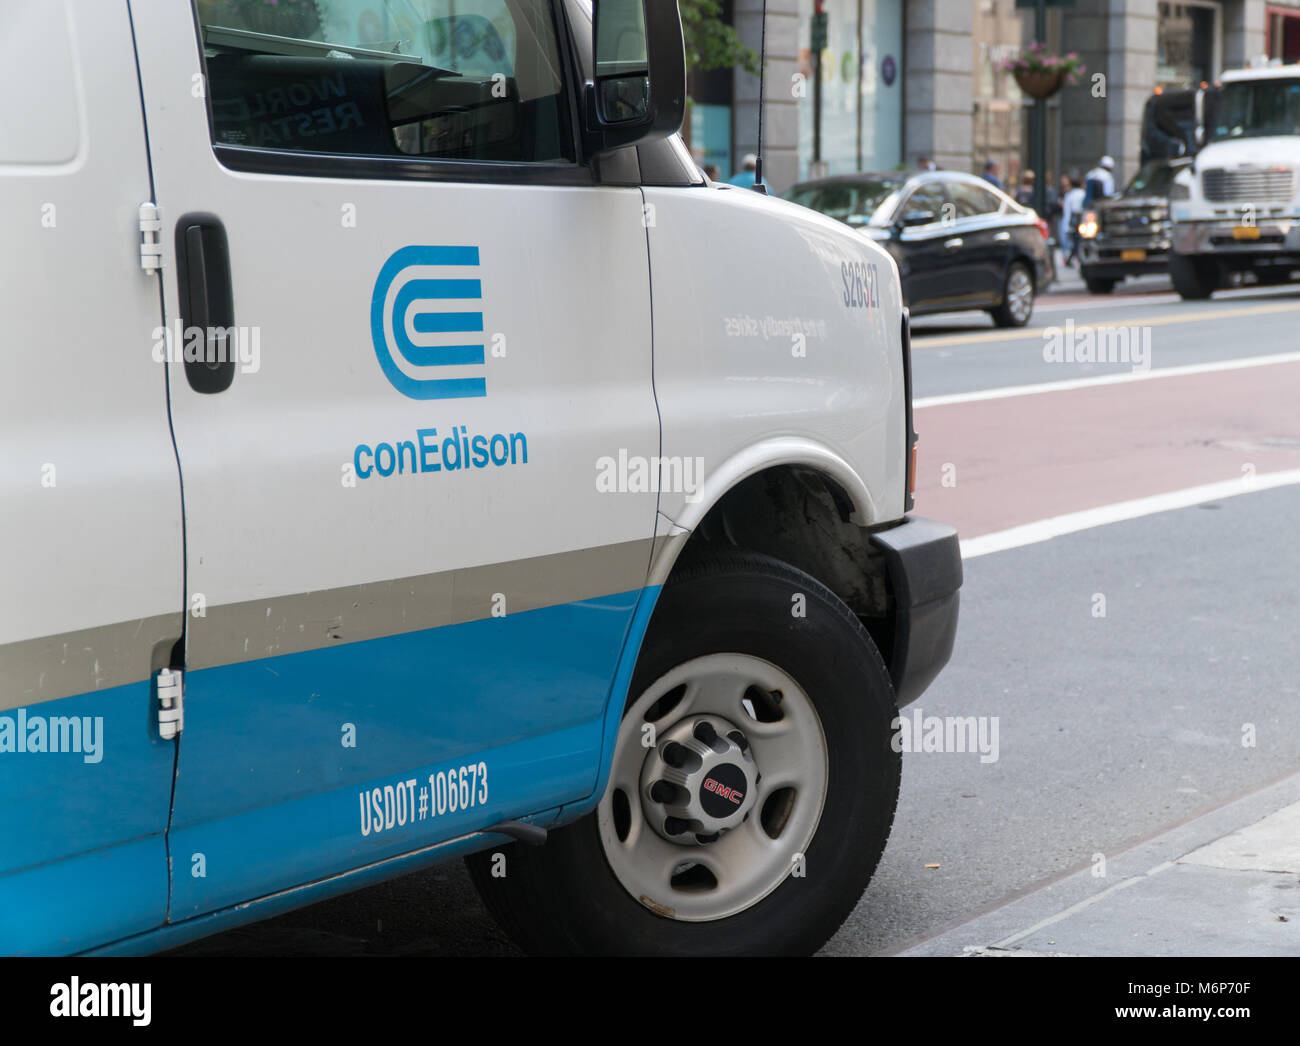 New York City - Circa 2017: Con Edison electricity gas and steam power company truck vehicle van parked on Manhattan - Stock Image